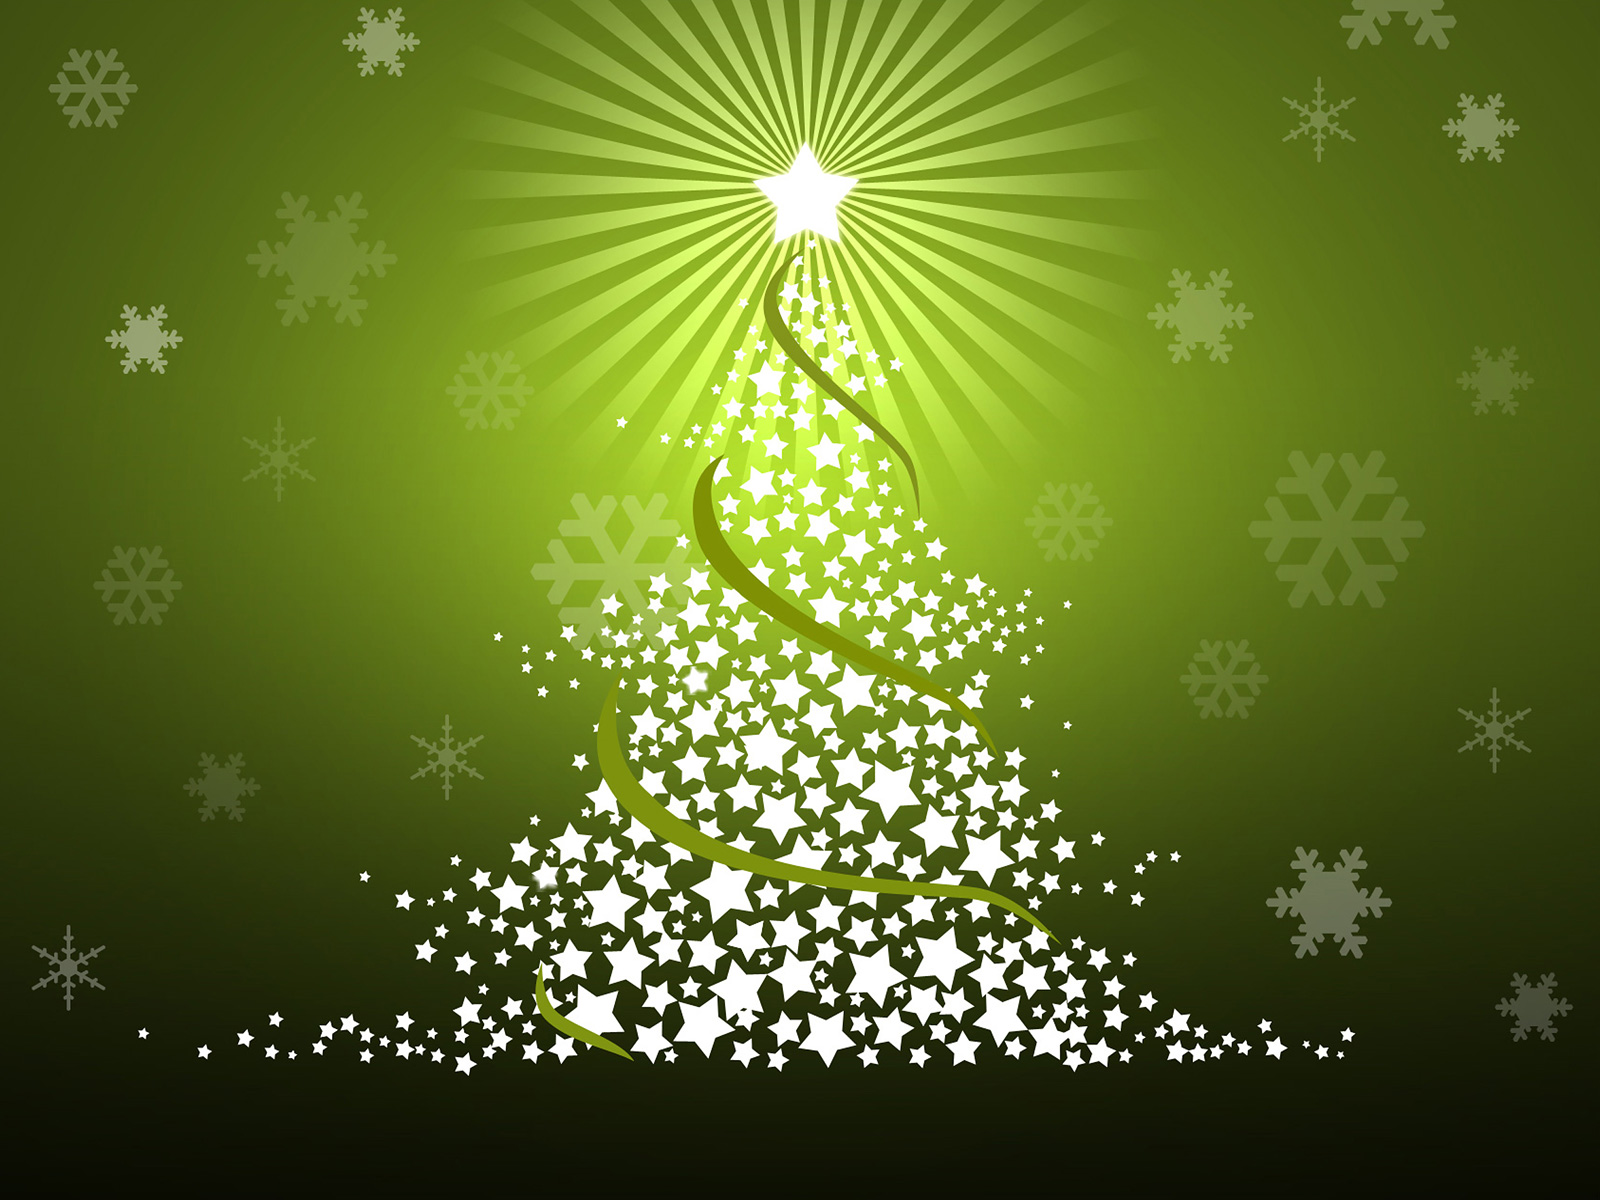 Christmas Phone Backgrounds Wallpapers9 1600x1200